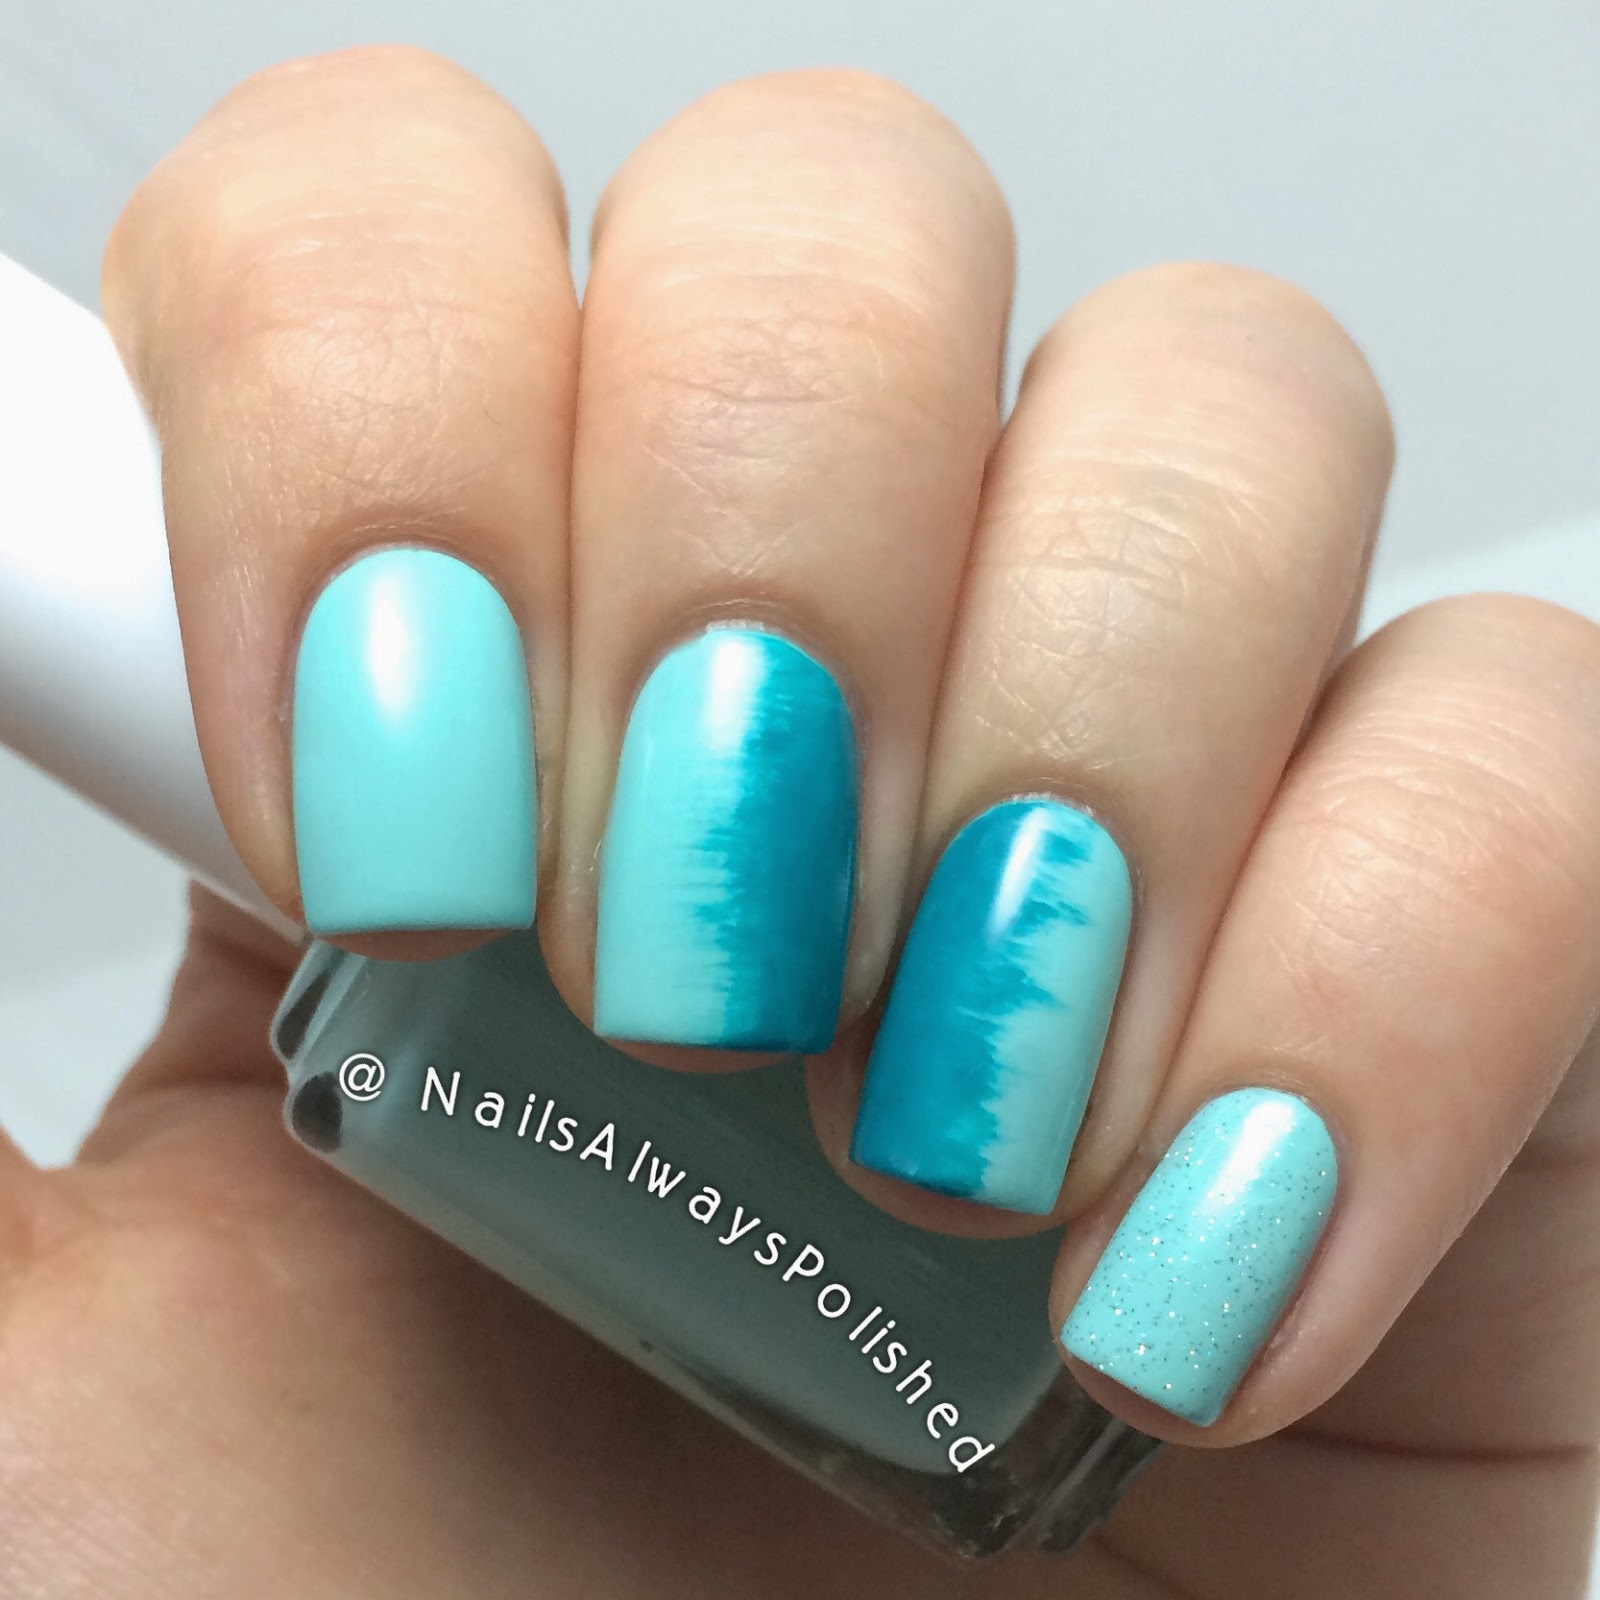 Nails Always Polished: April Nail Art Challenge: Fan Brush